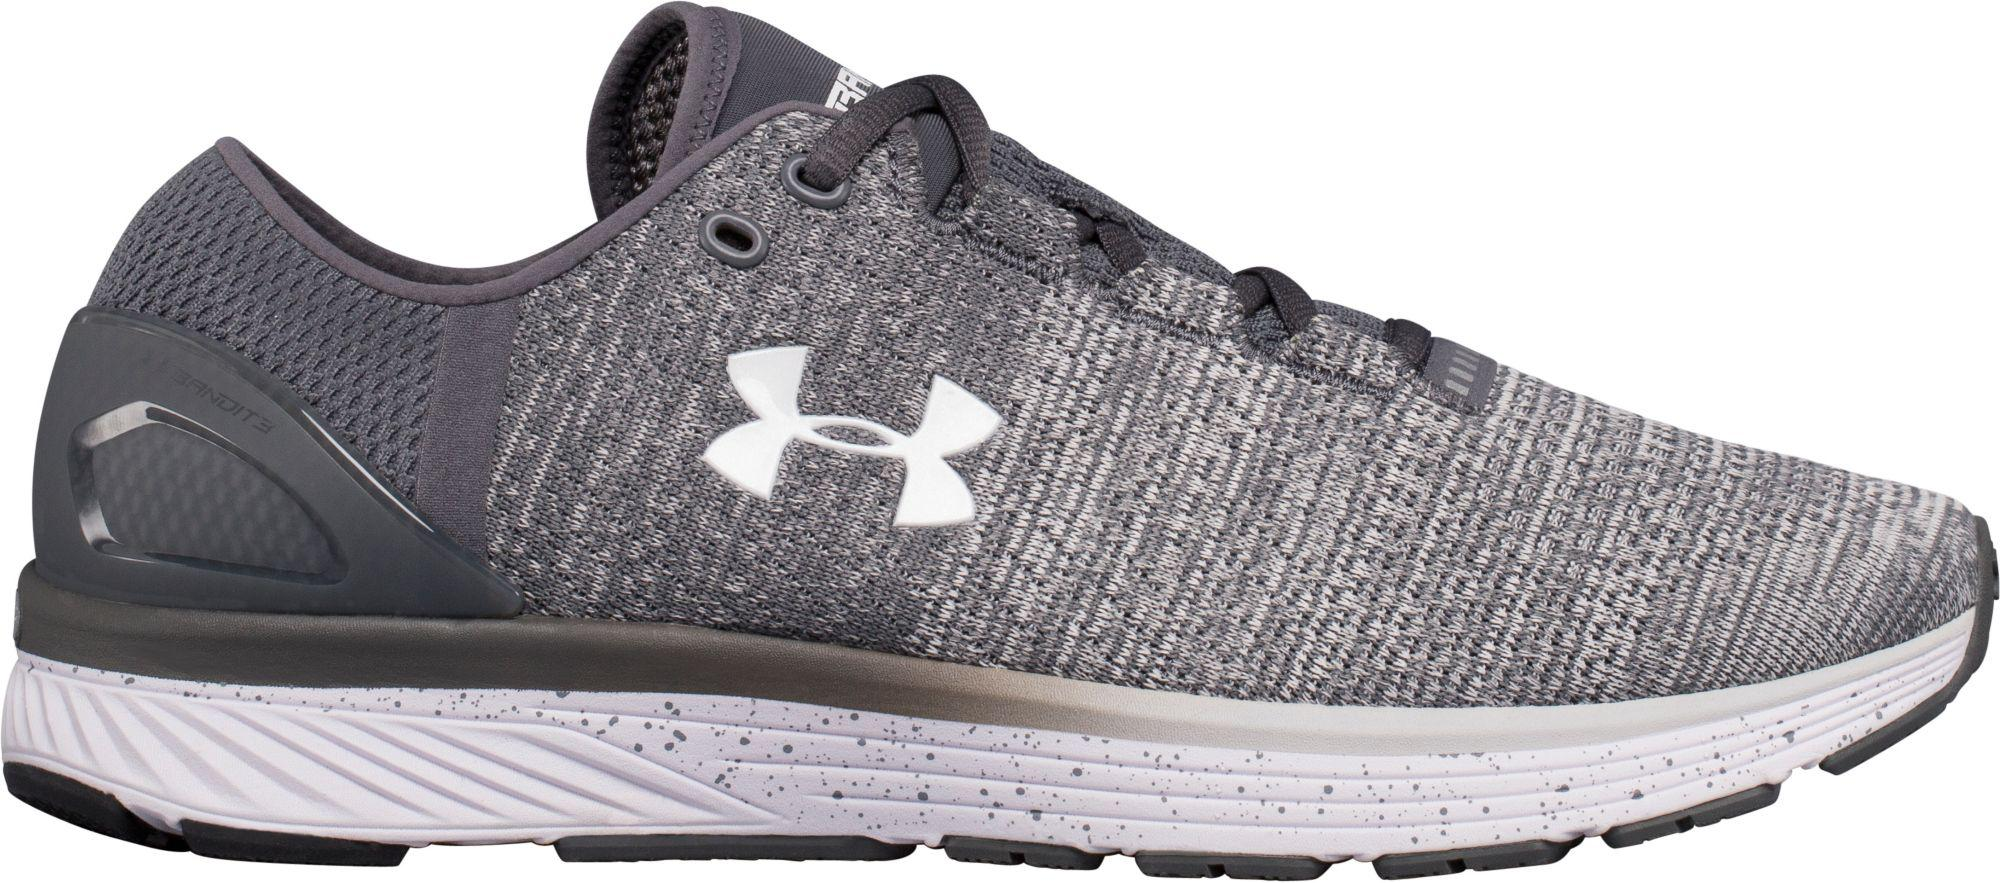 7450e9dd7140 ... Under Armour - Gray Charged Bandit 3 Running Shoes for Men - Lyst ...